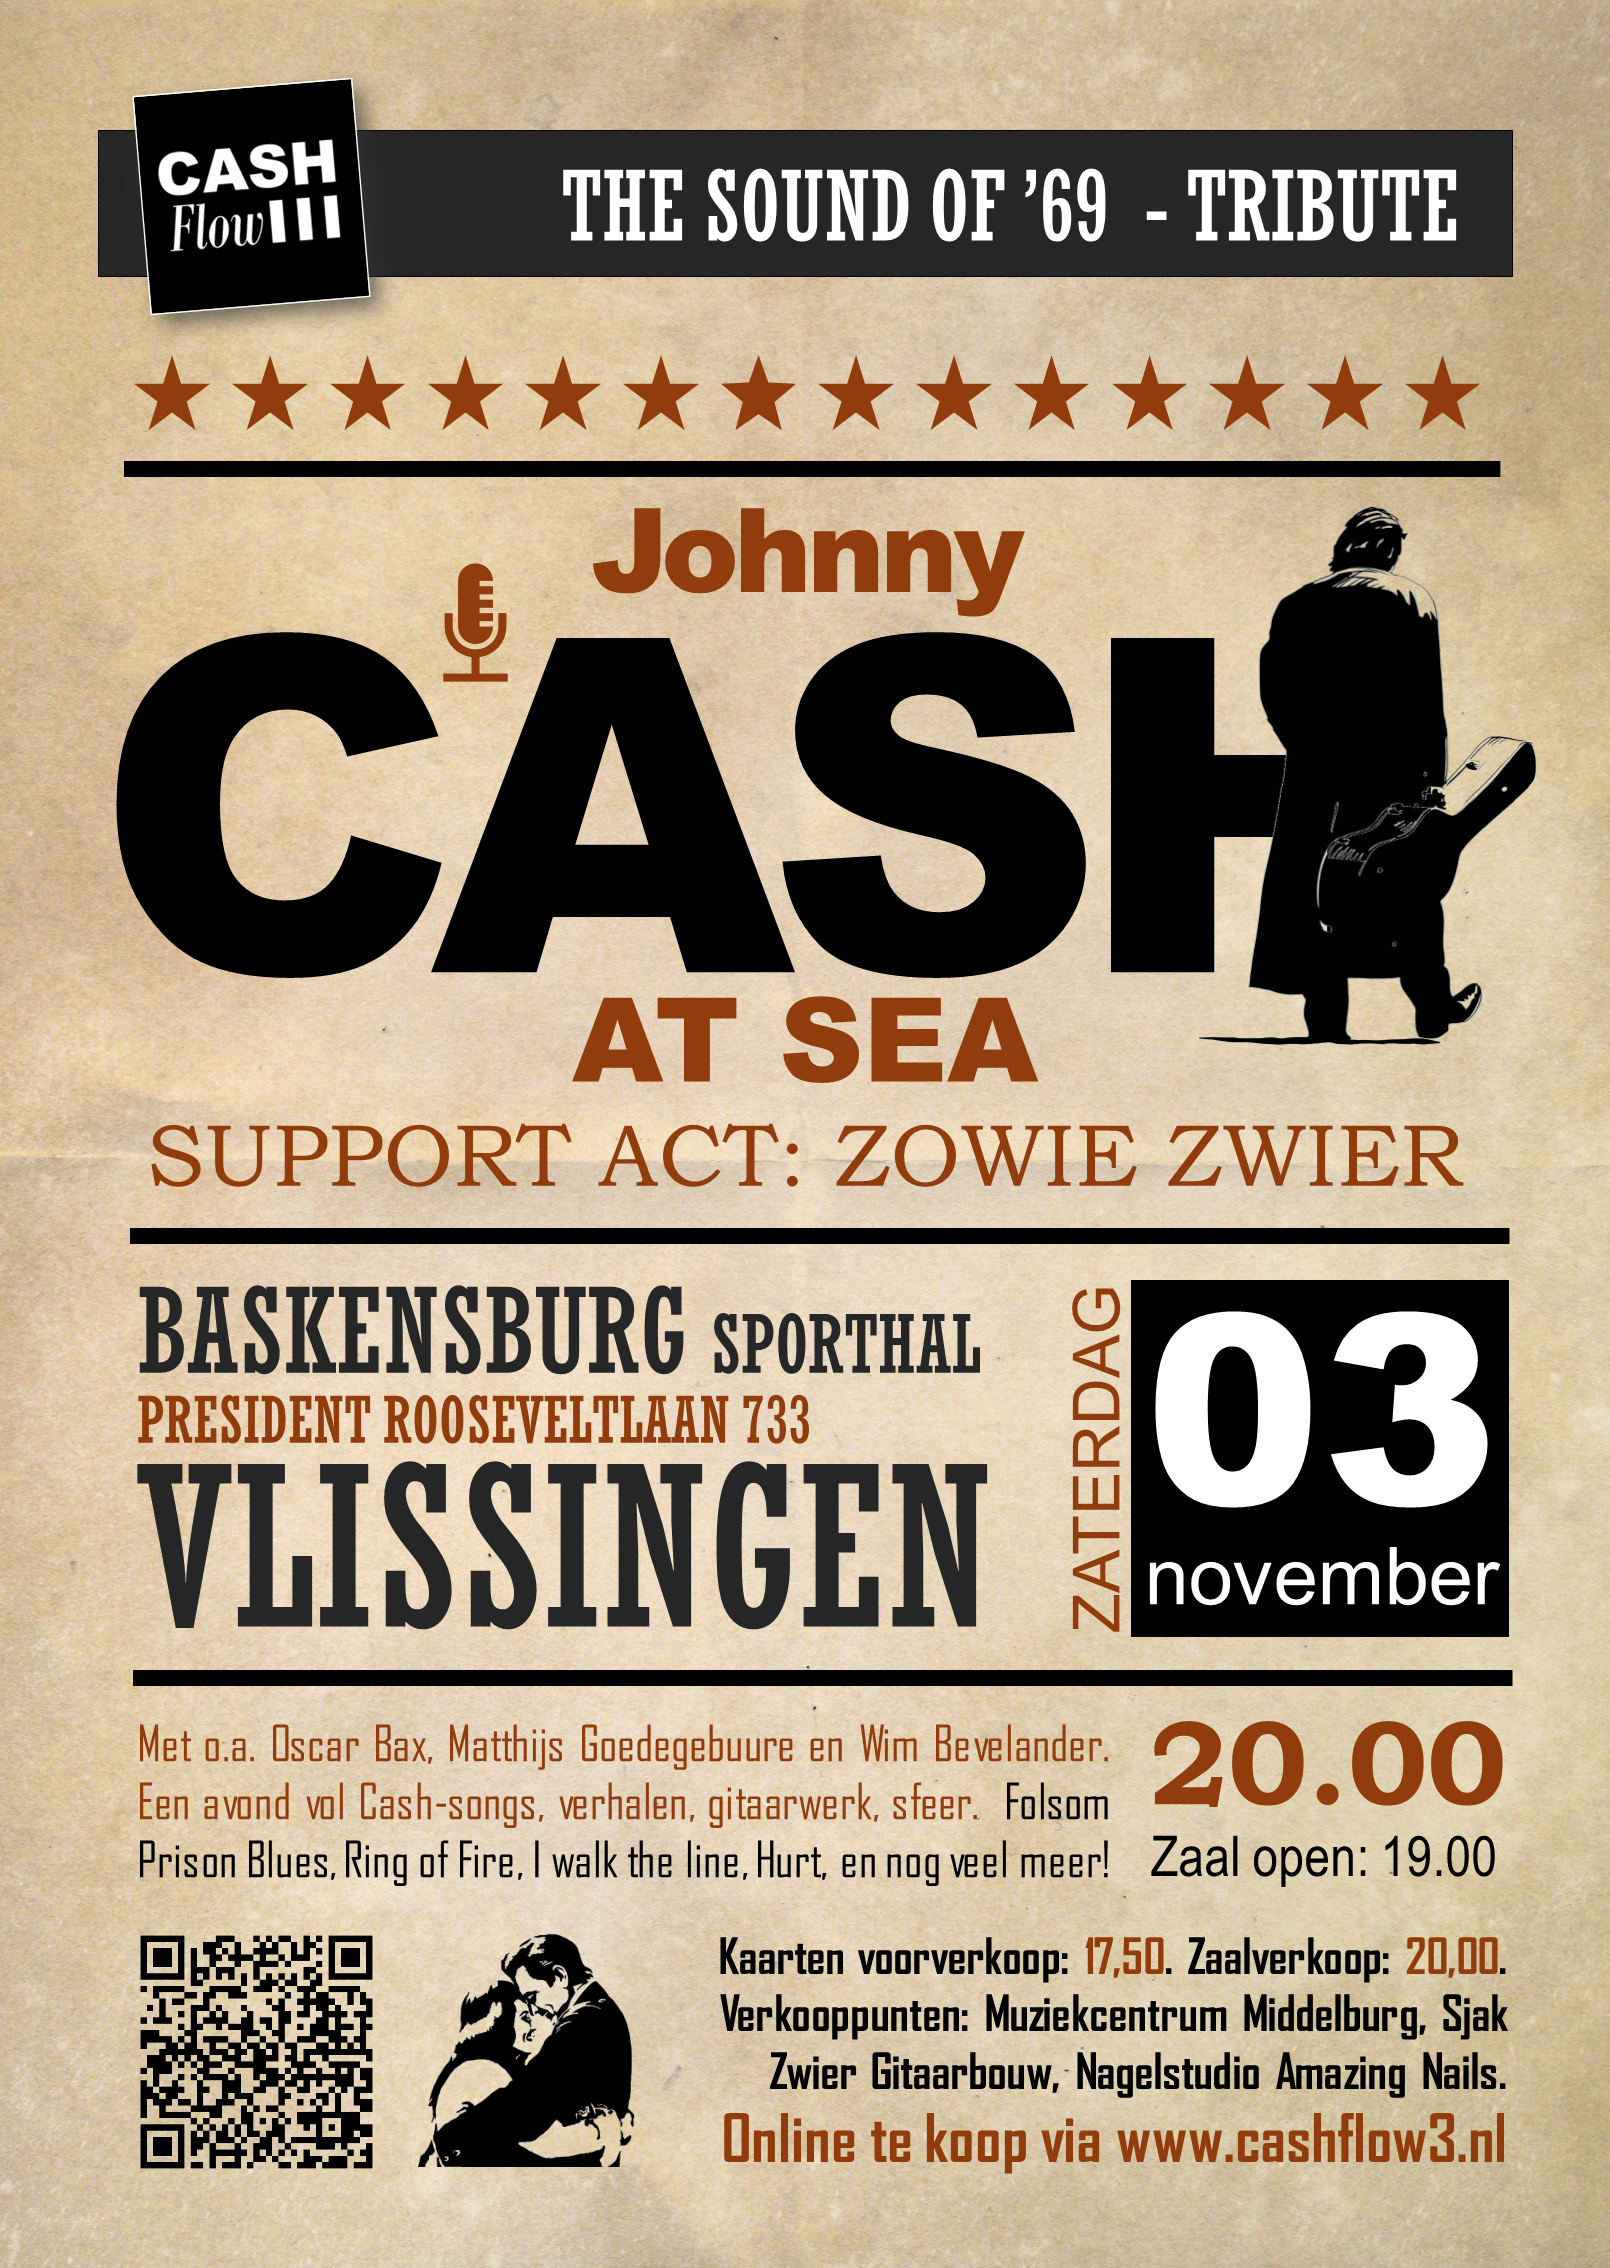 Johnny Cash at Sea Vlissingen 3 november Cashflow3